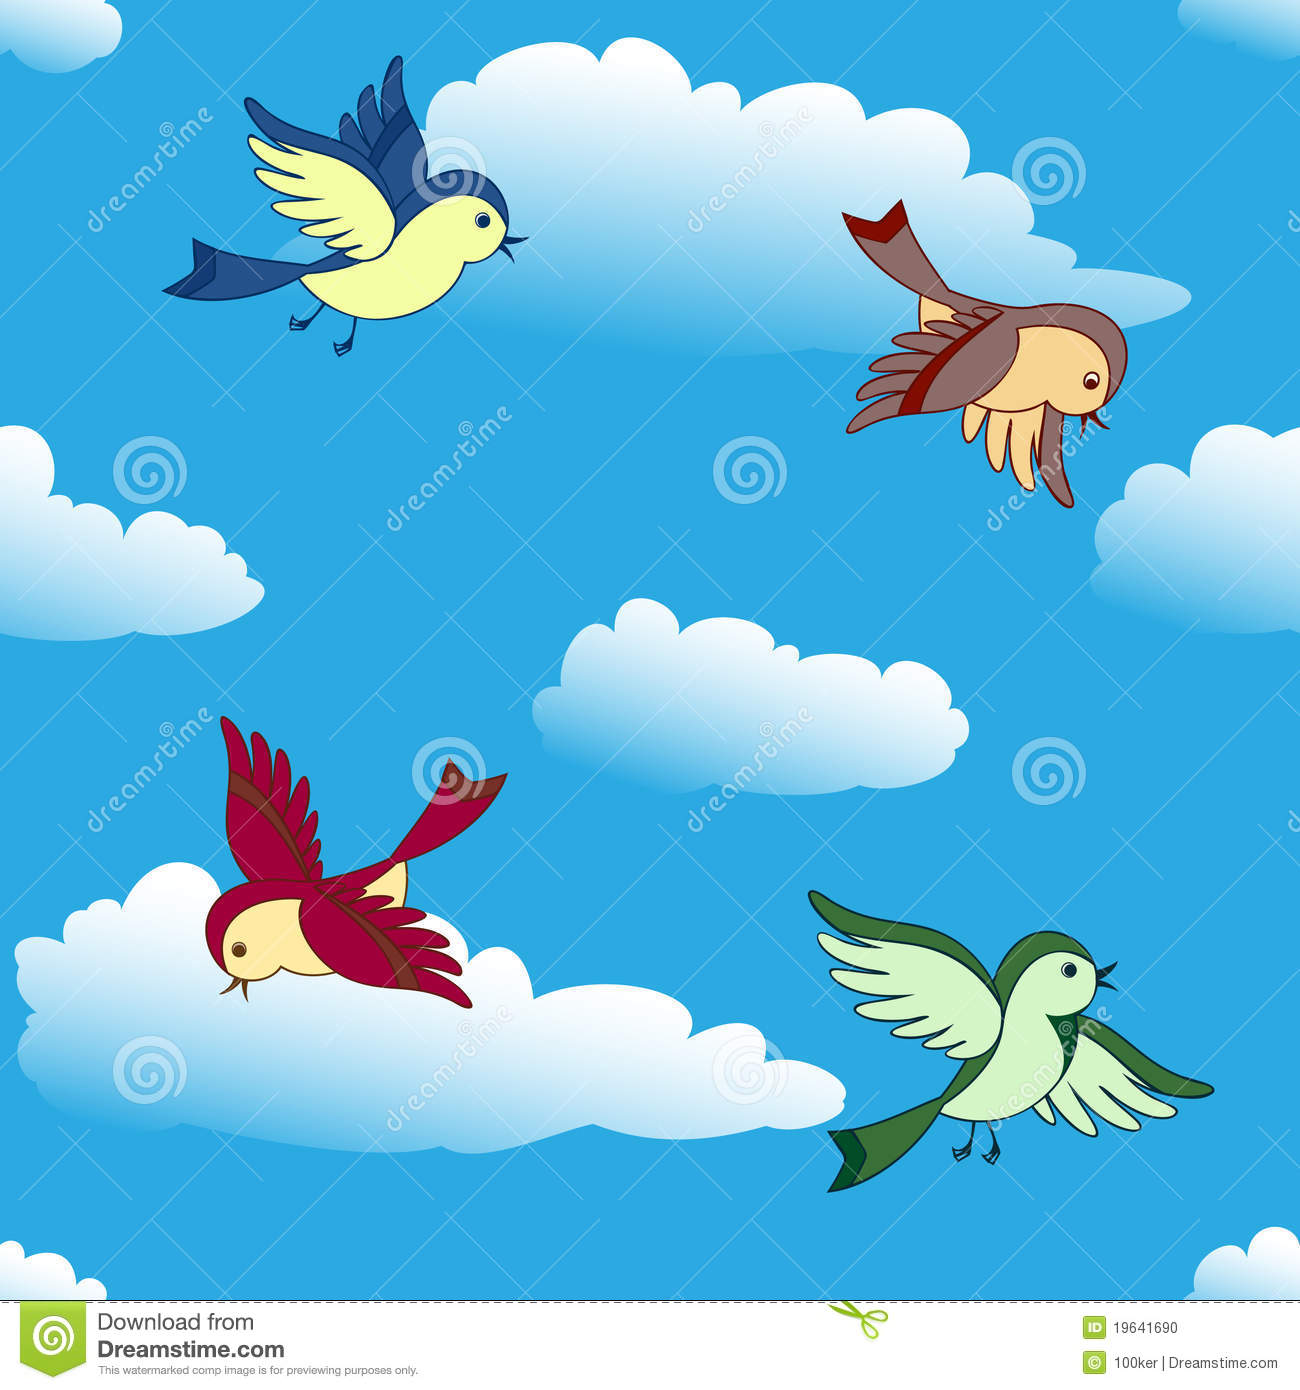 Vector birds flying in blue sky seamless background.